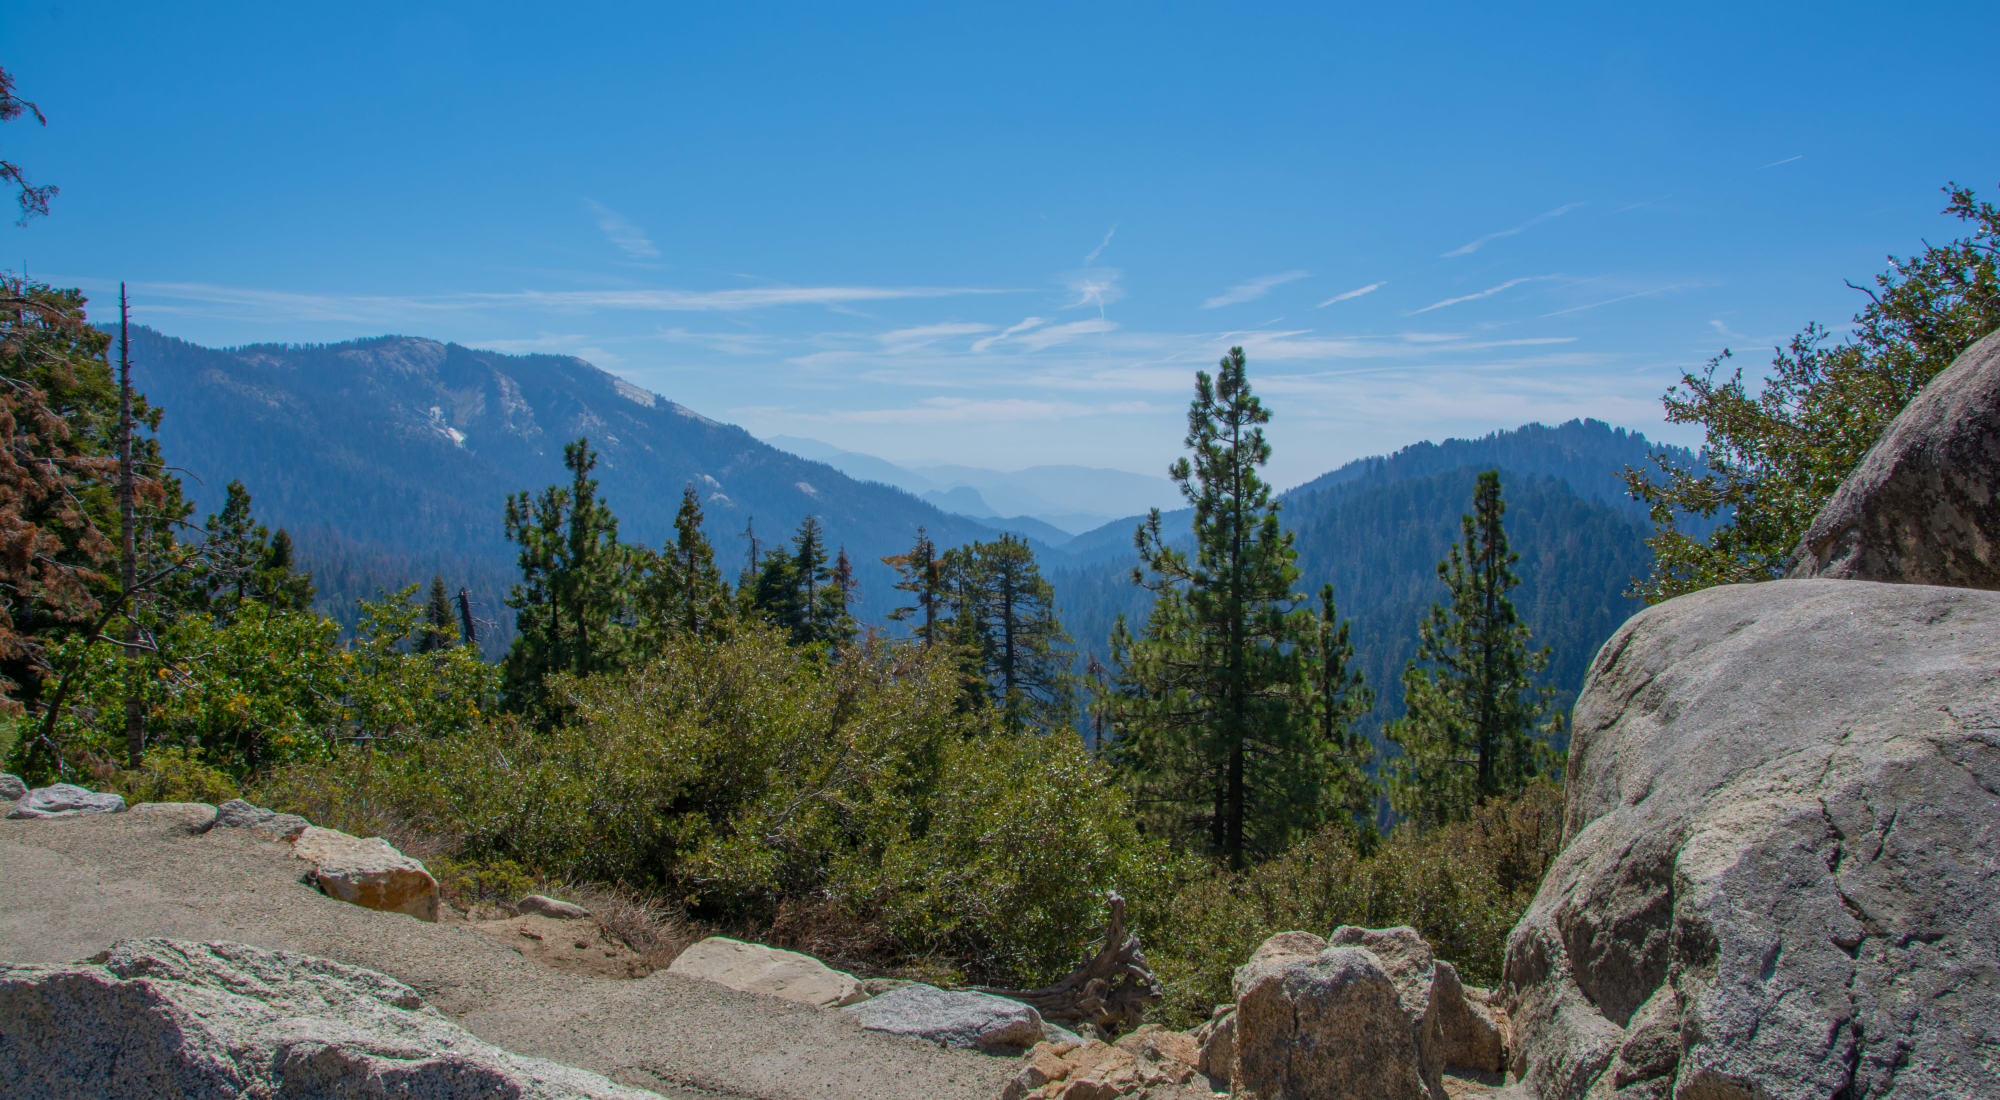 Mountain View near Wildwood Canyon Villa Assisted Living and Memory Care